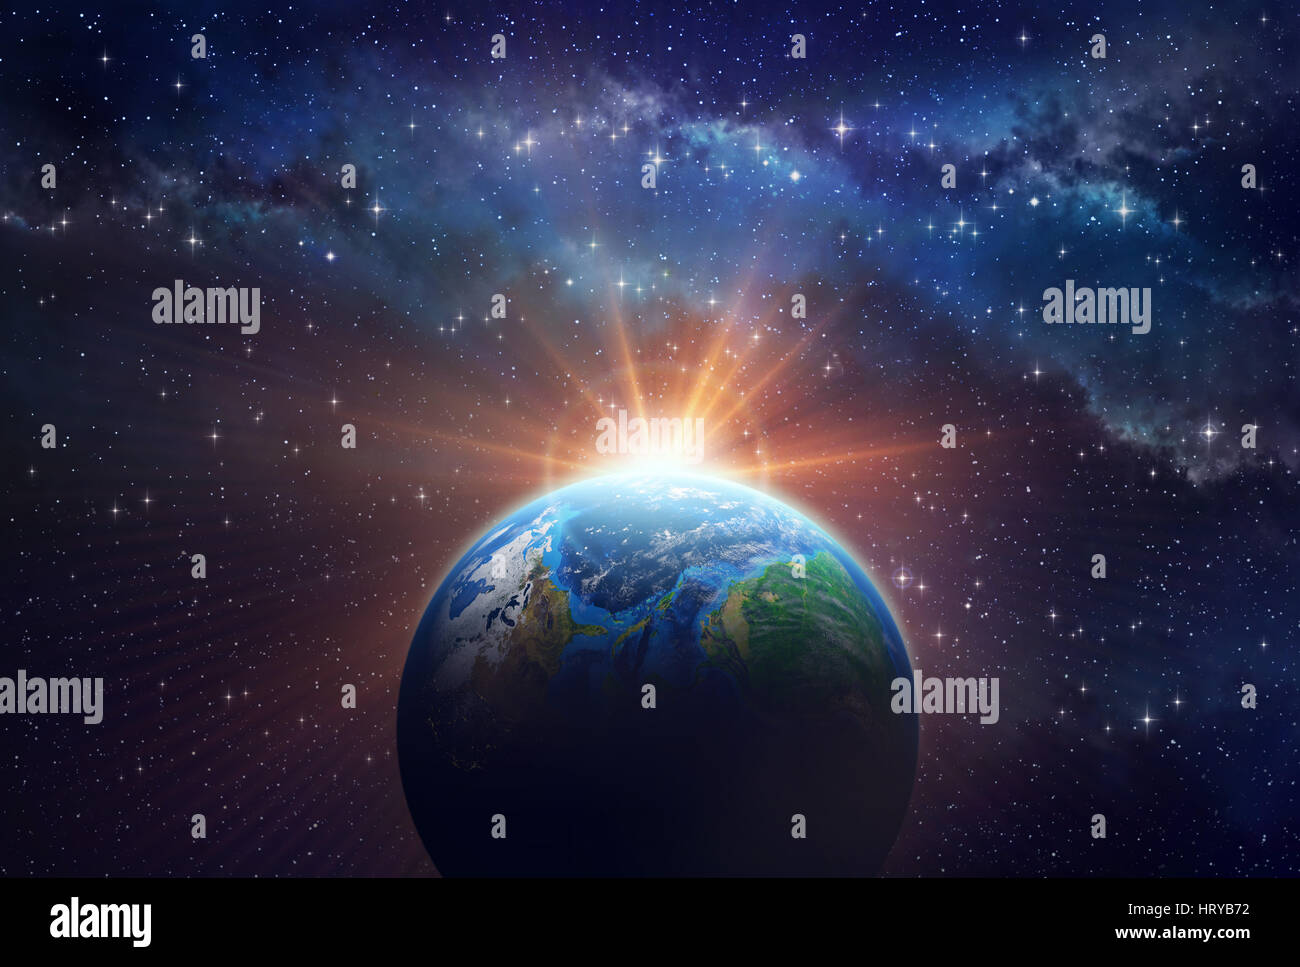 Illuminated face of a planet in outer space, a sunny light shining behind - Stock Image